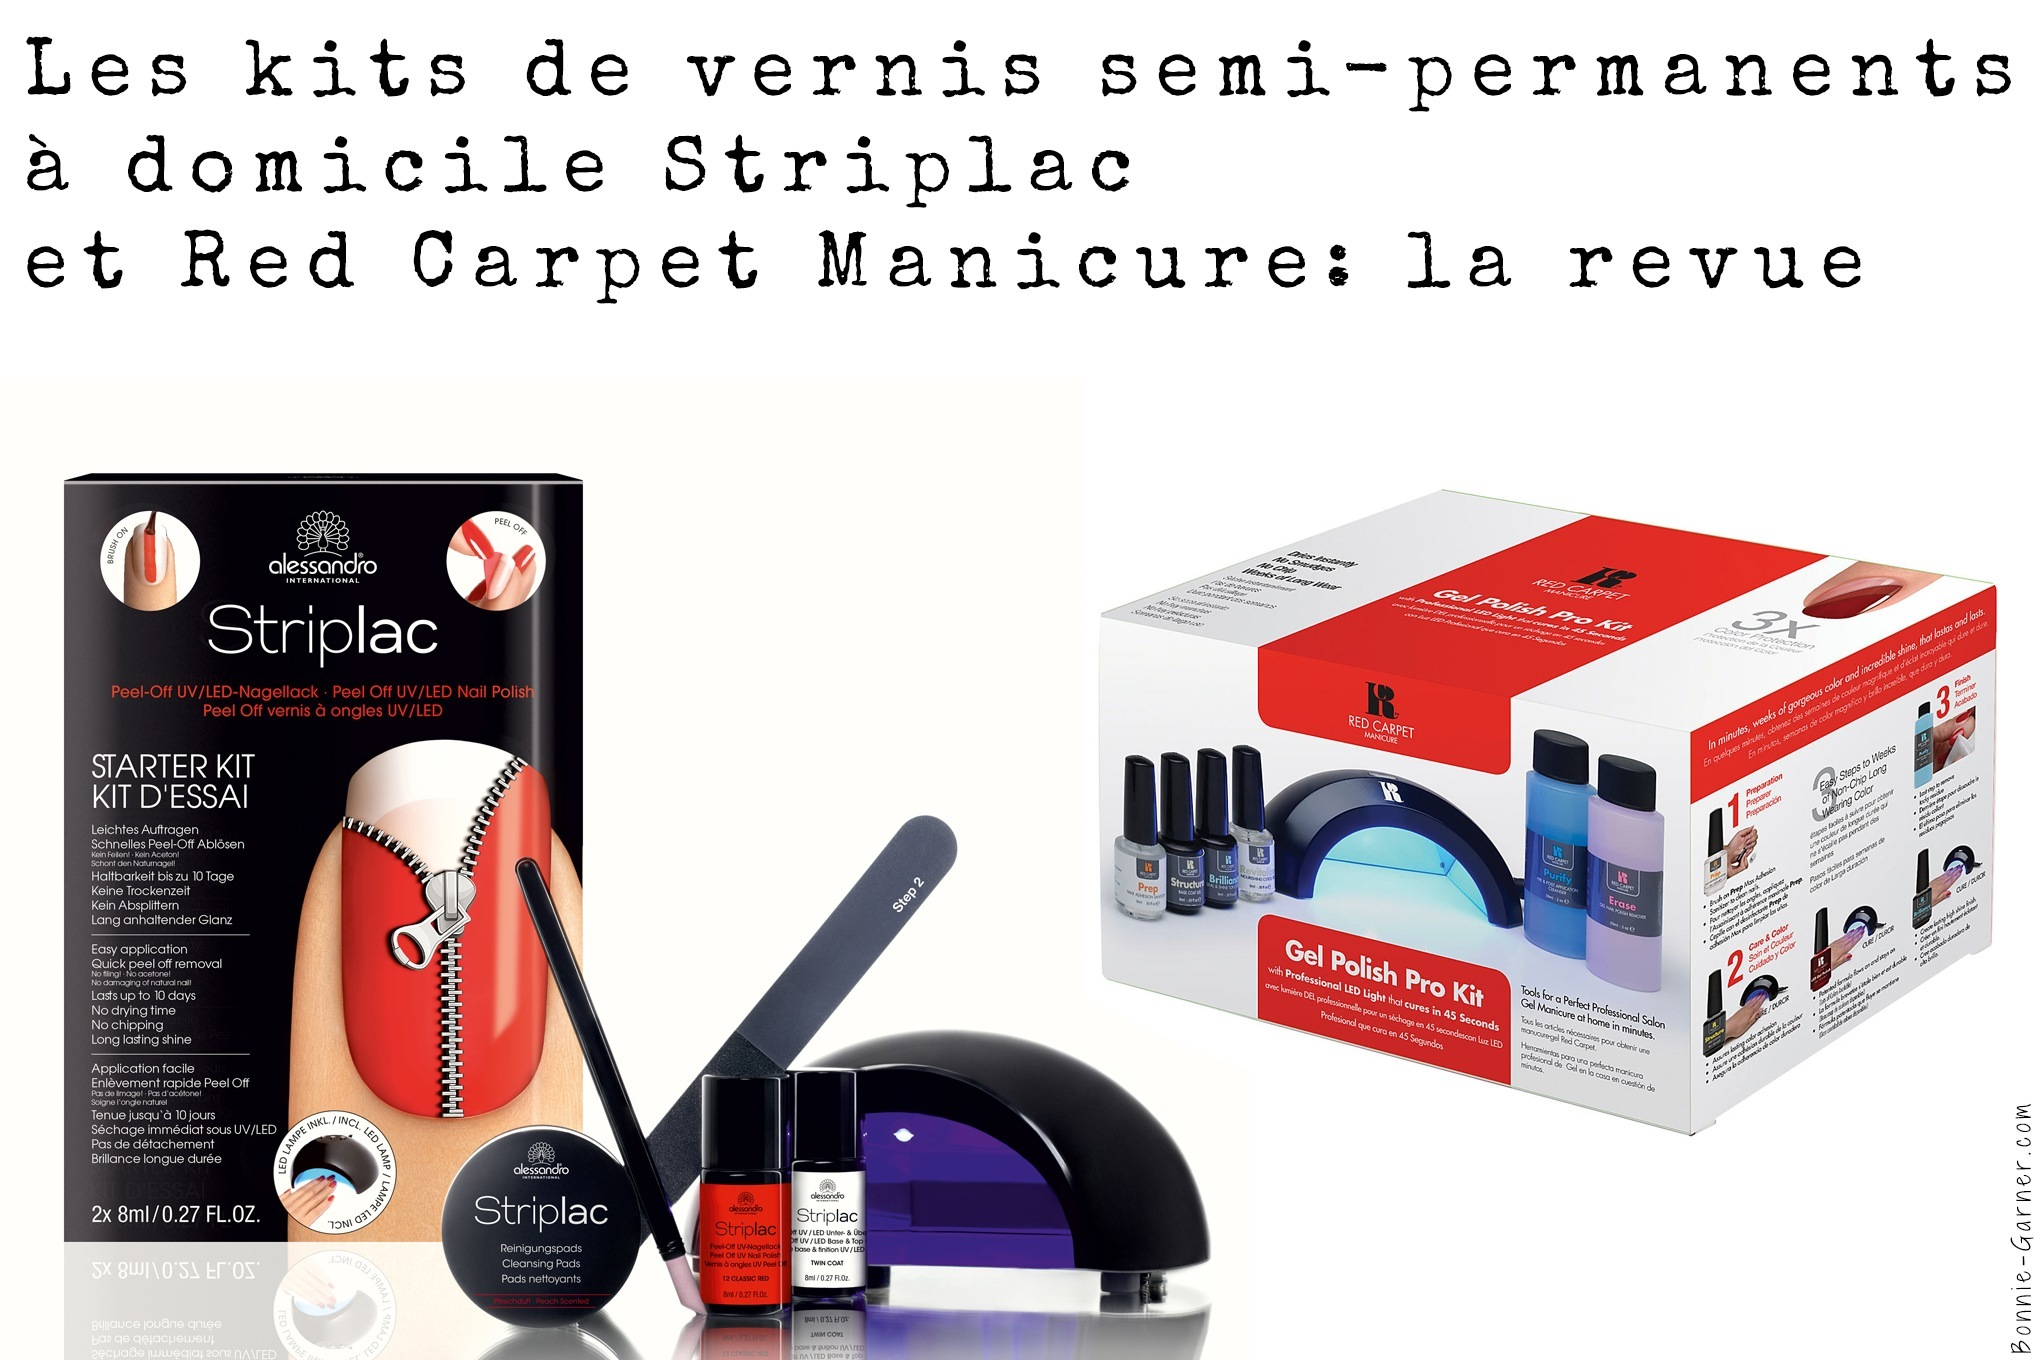 Les kits de vernis semi-permanents à domicile Striplac et Red Carpet Manicure: la revue